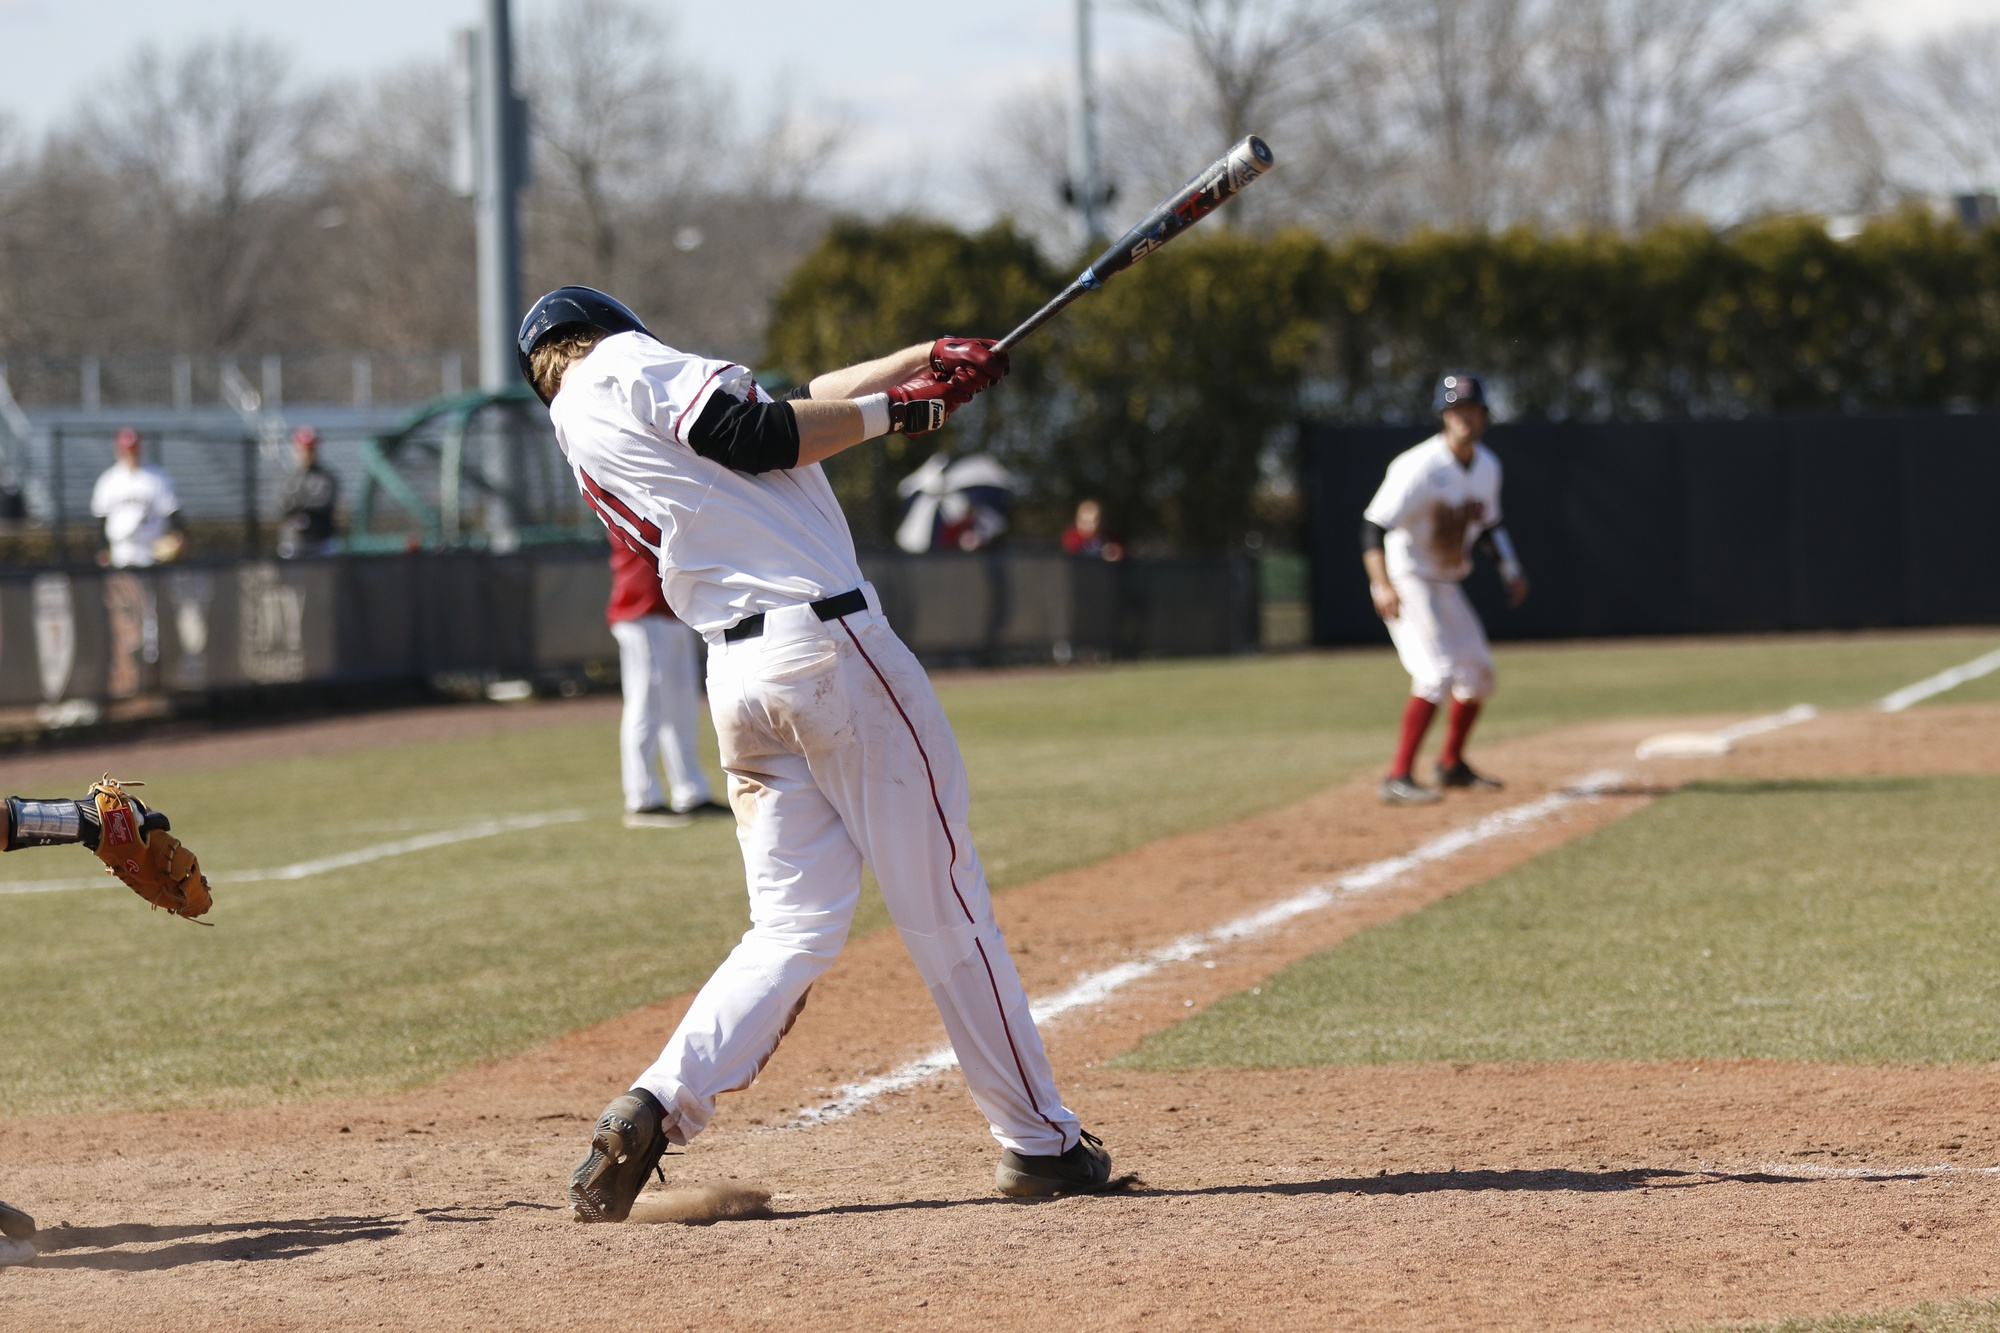 Pat McColl currently leads the conference with a batting average of .459. Earlier in the season, he held the nation's highest mark in this category.